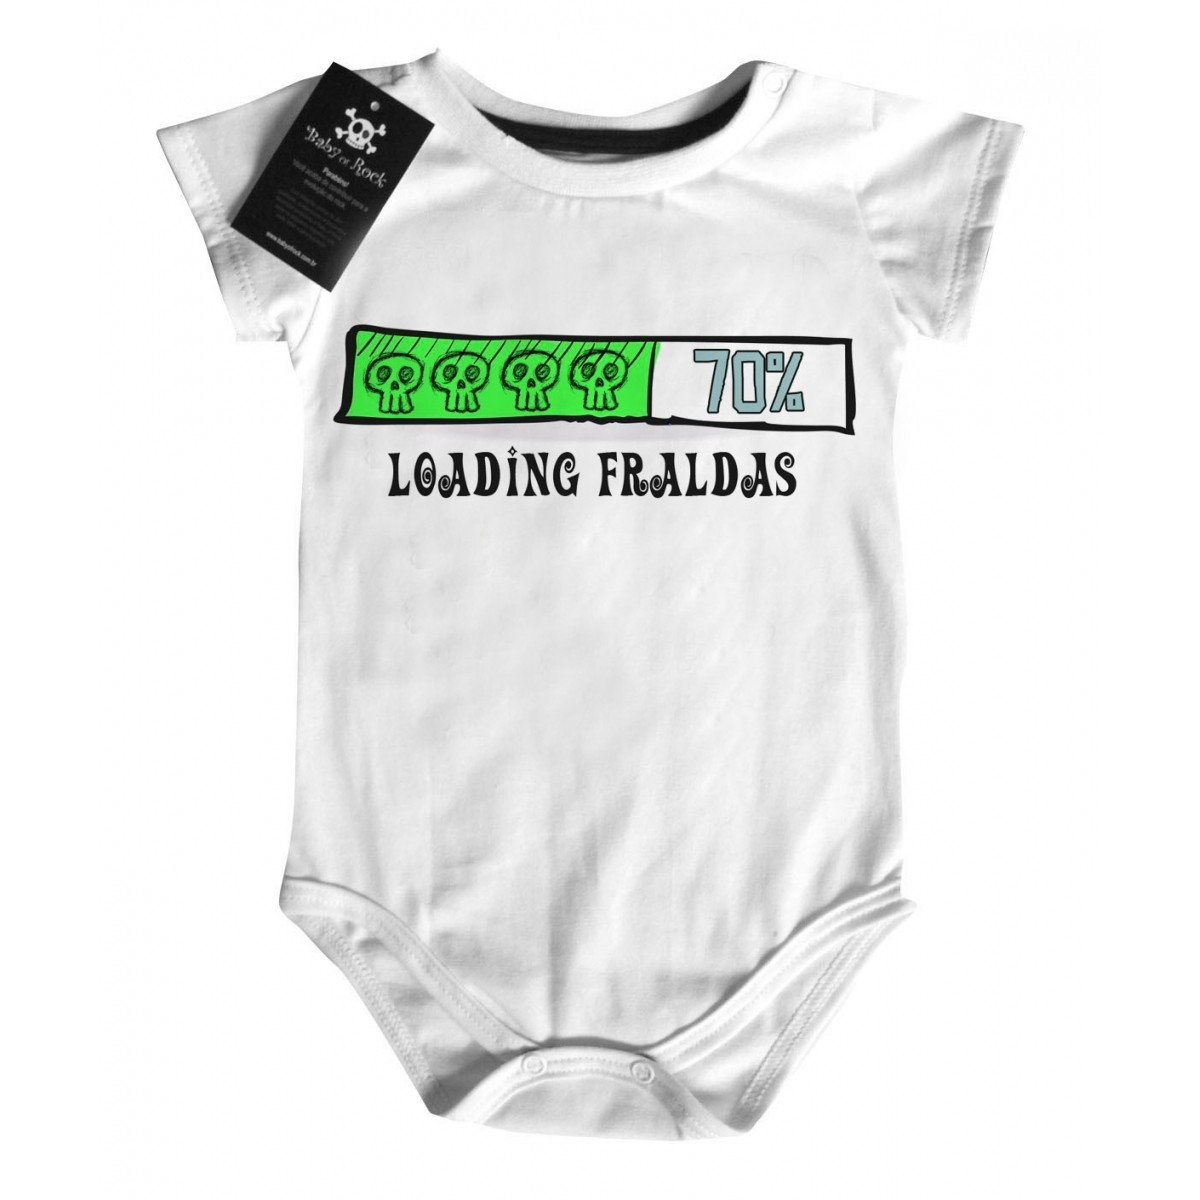 Body Baby Divertido - Carregando Fraldas - White  - Baby Monster S/A